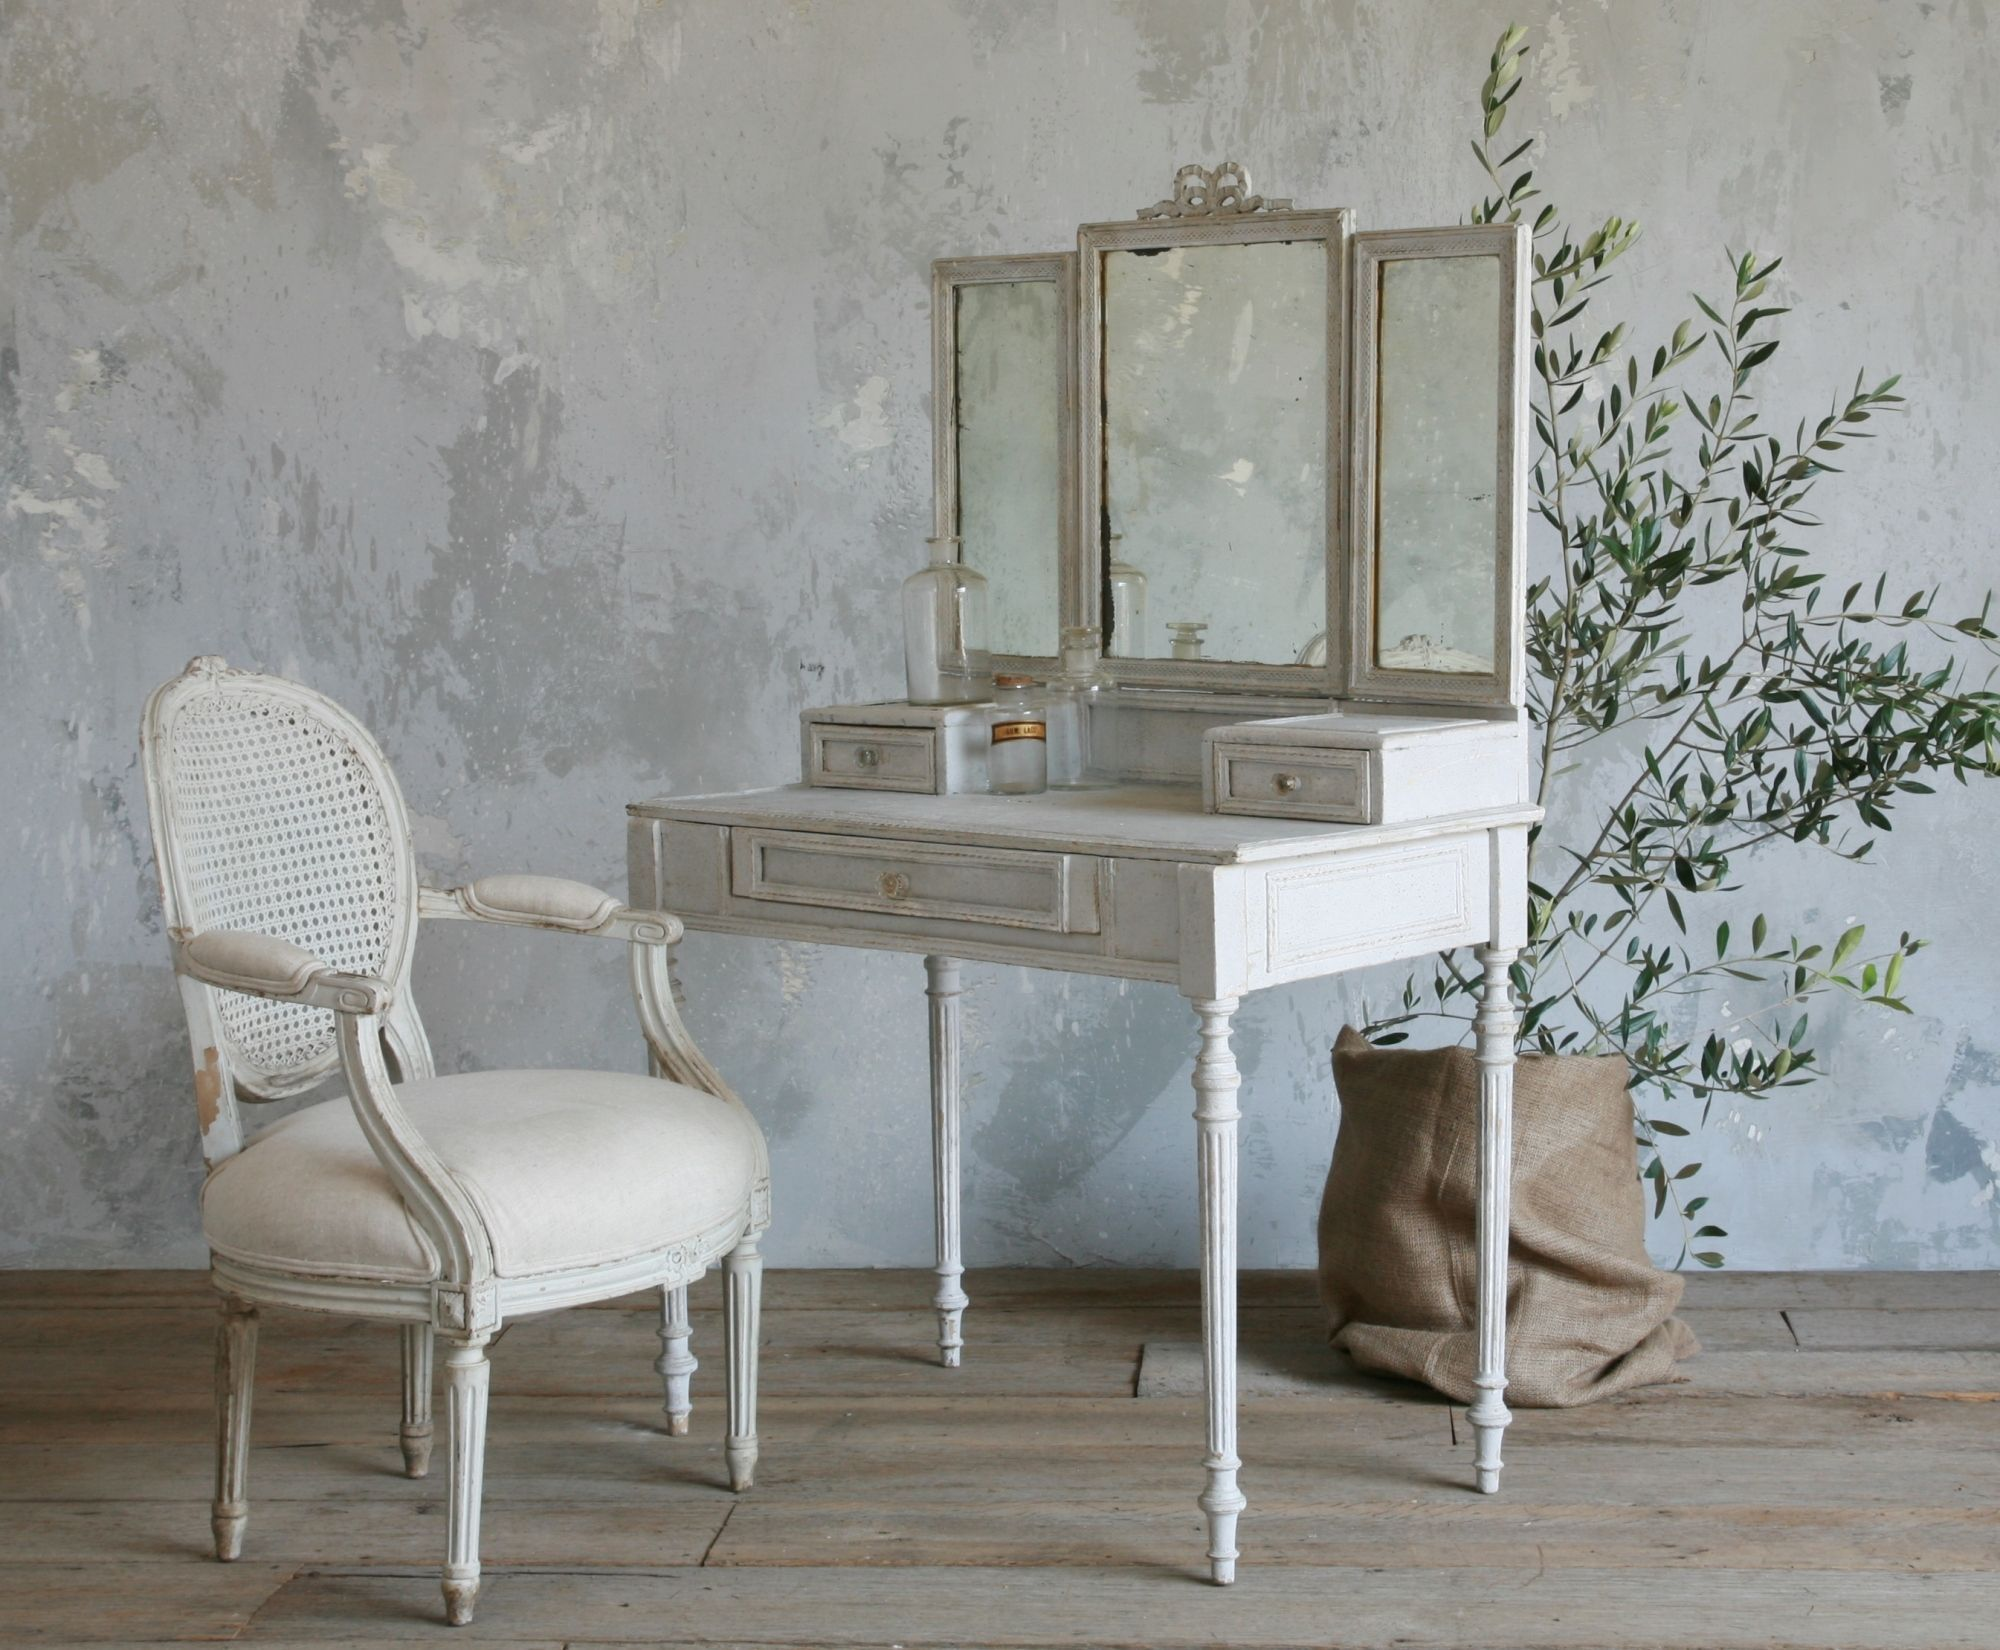 Enchanting White Tri Fold Mirrored Vanity Table For Makeup Dressing Ideas With Single White Wooden Rustic Armchair In Coun Antique Vanity Table Decor Furniture